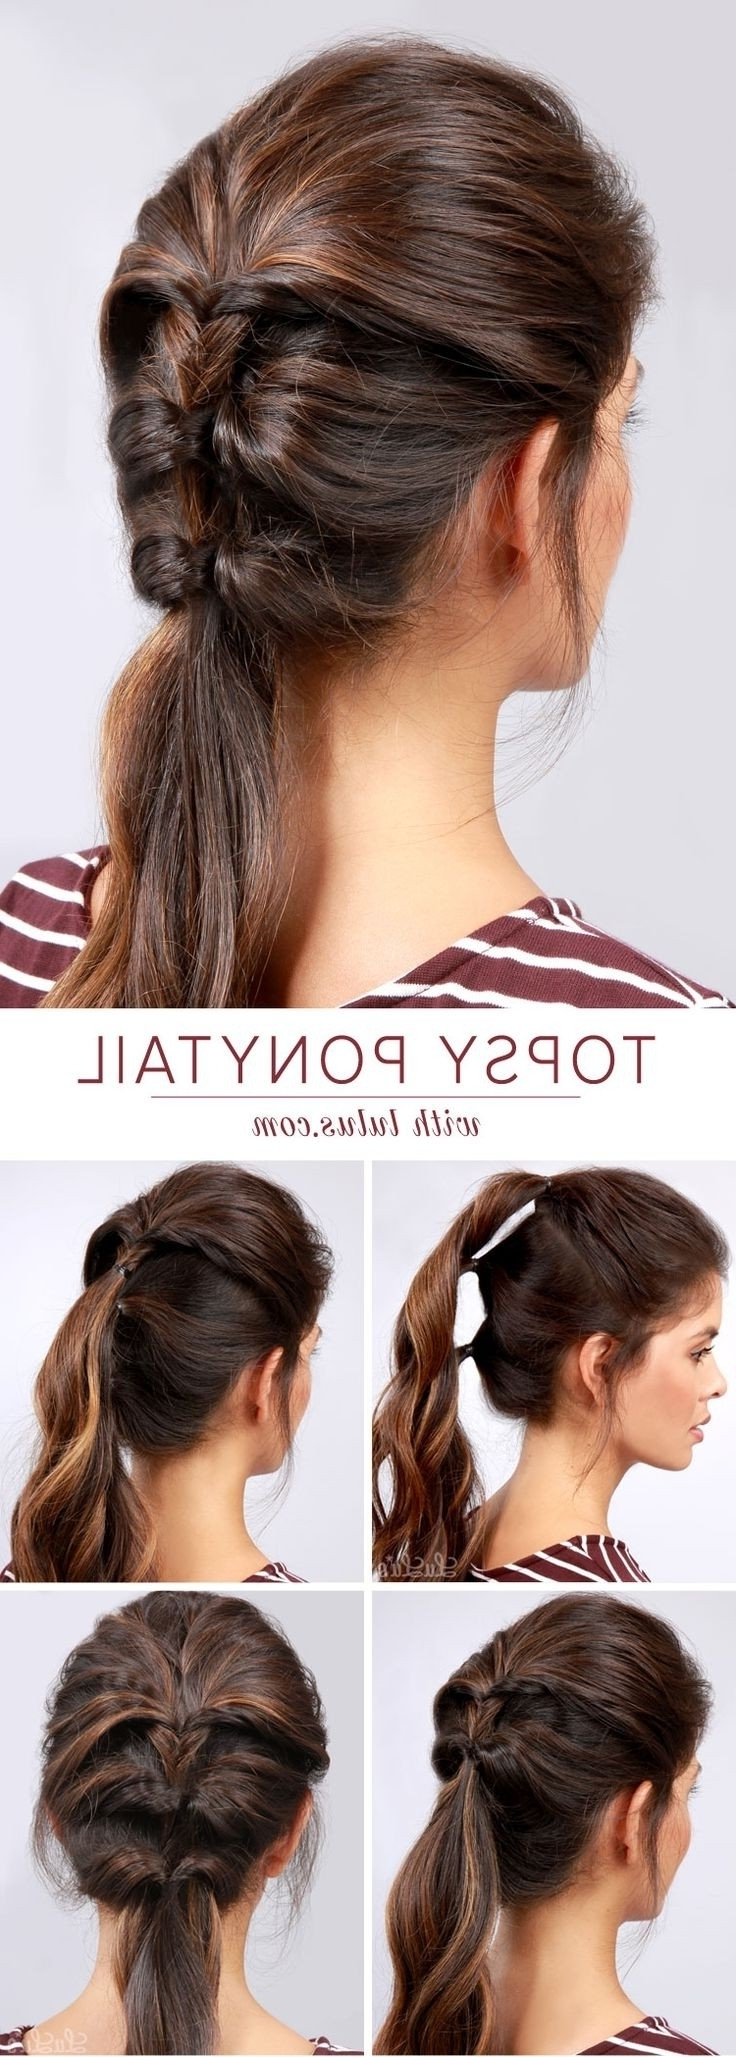 22 Great Ponytail Hairstyles For Girls – Pretty Designs Pertaining To Ponytail Updo Hairstyles (View 7 of 15)